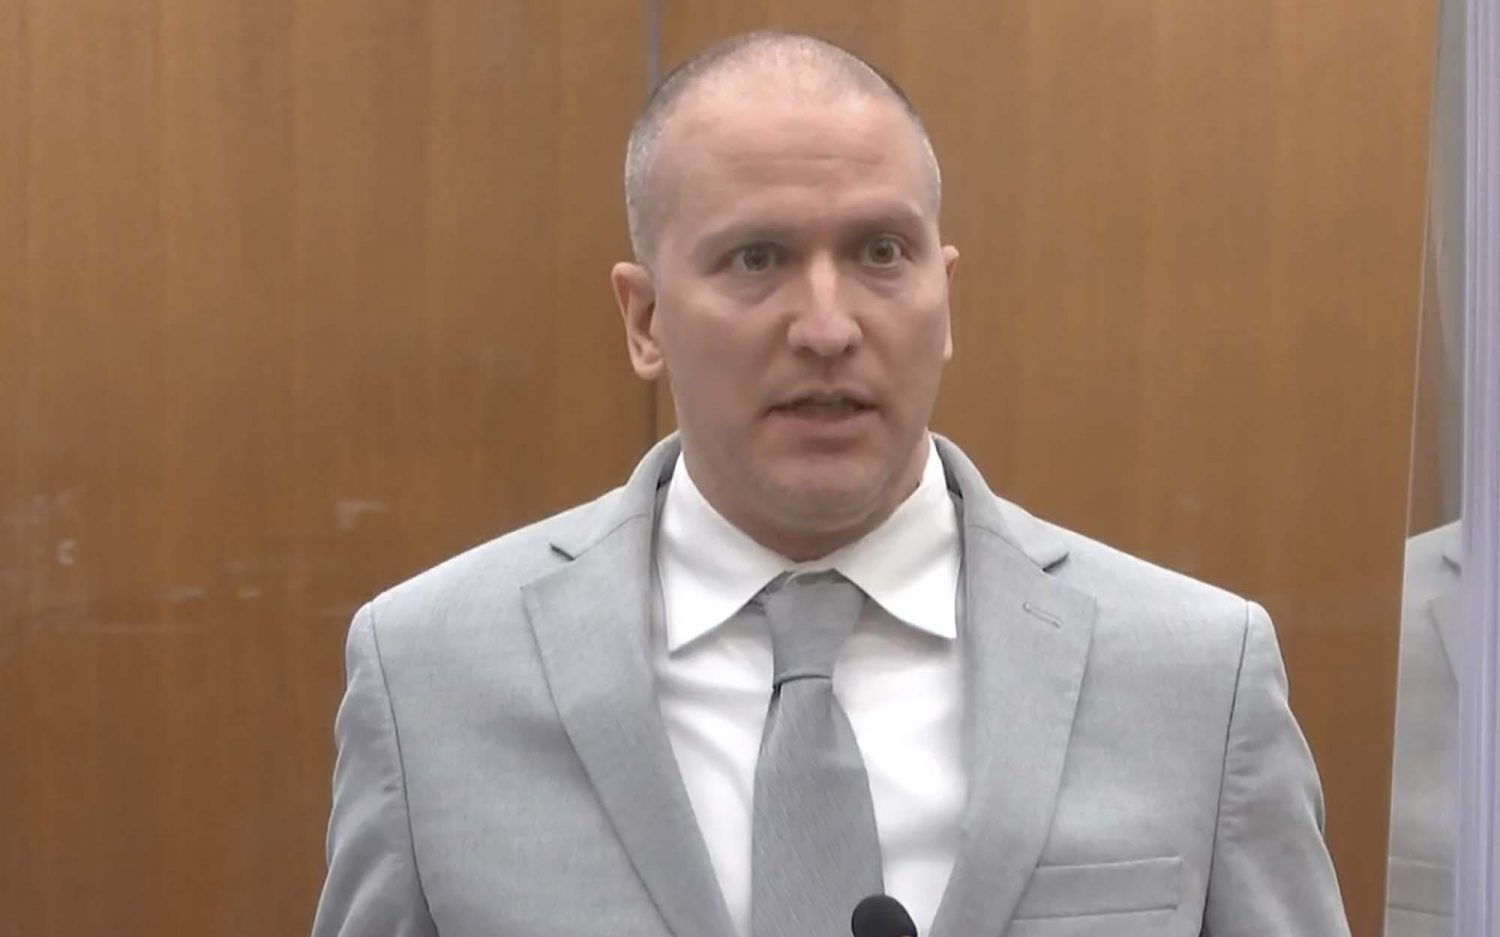 Former officers plead not guilty to violating Floyd's rights